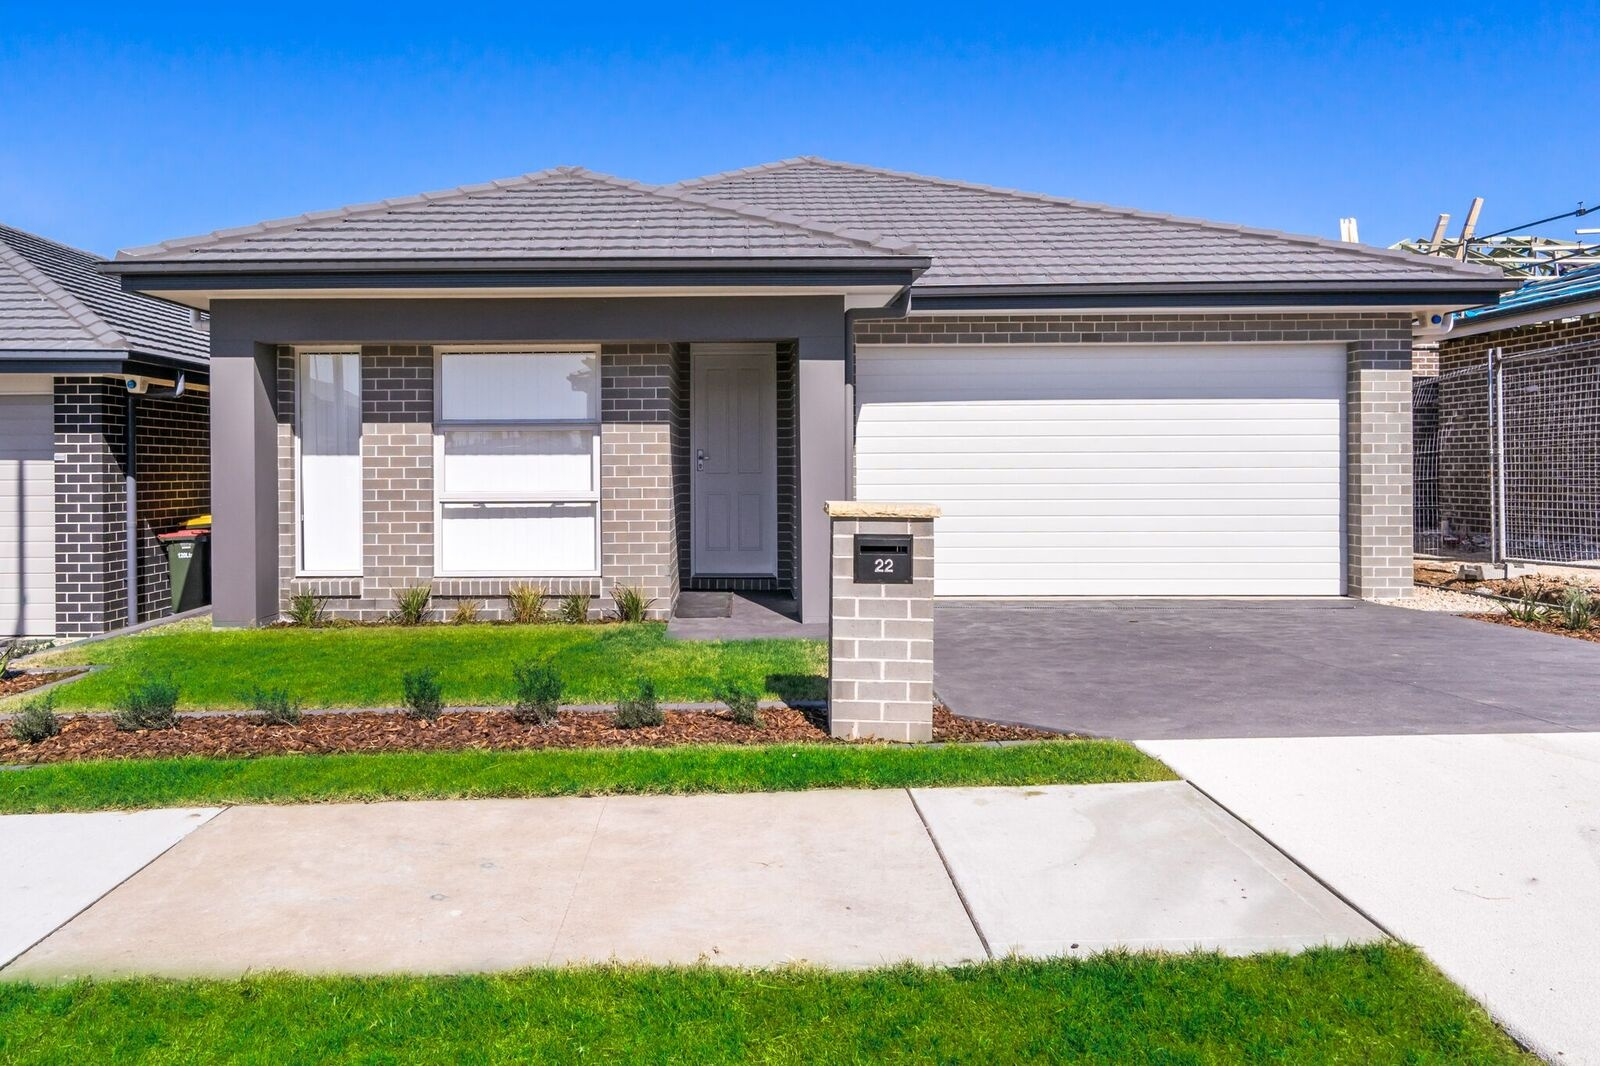 22 Rawlings Street,Oran Park,NSW,4 Bedrooms Bedrooms,2 BathroomsBathrooms,House,Rawlings Street,1065